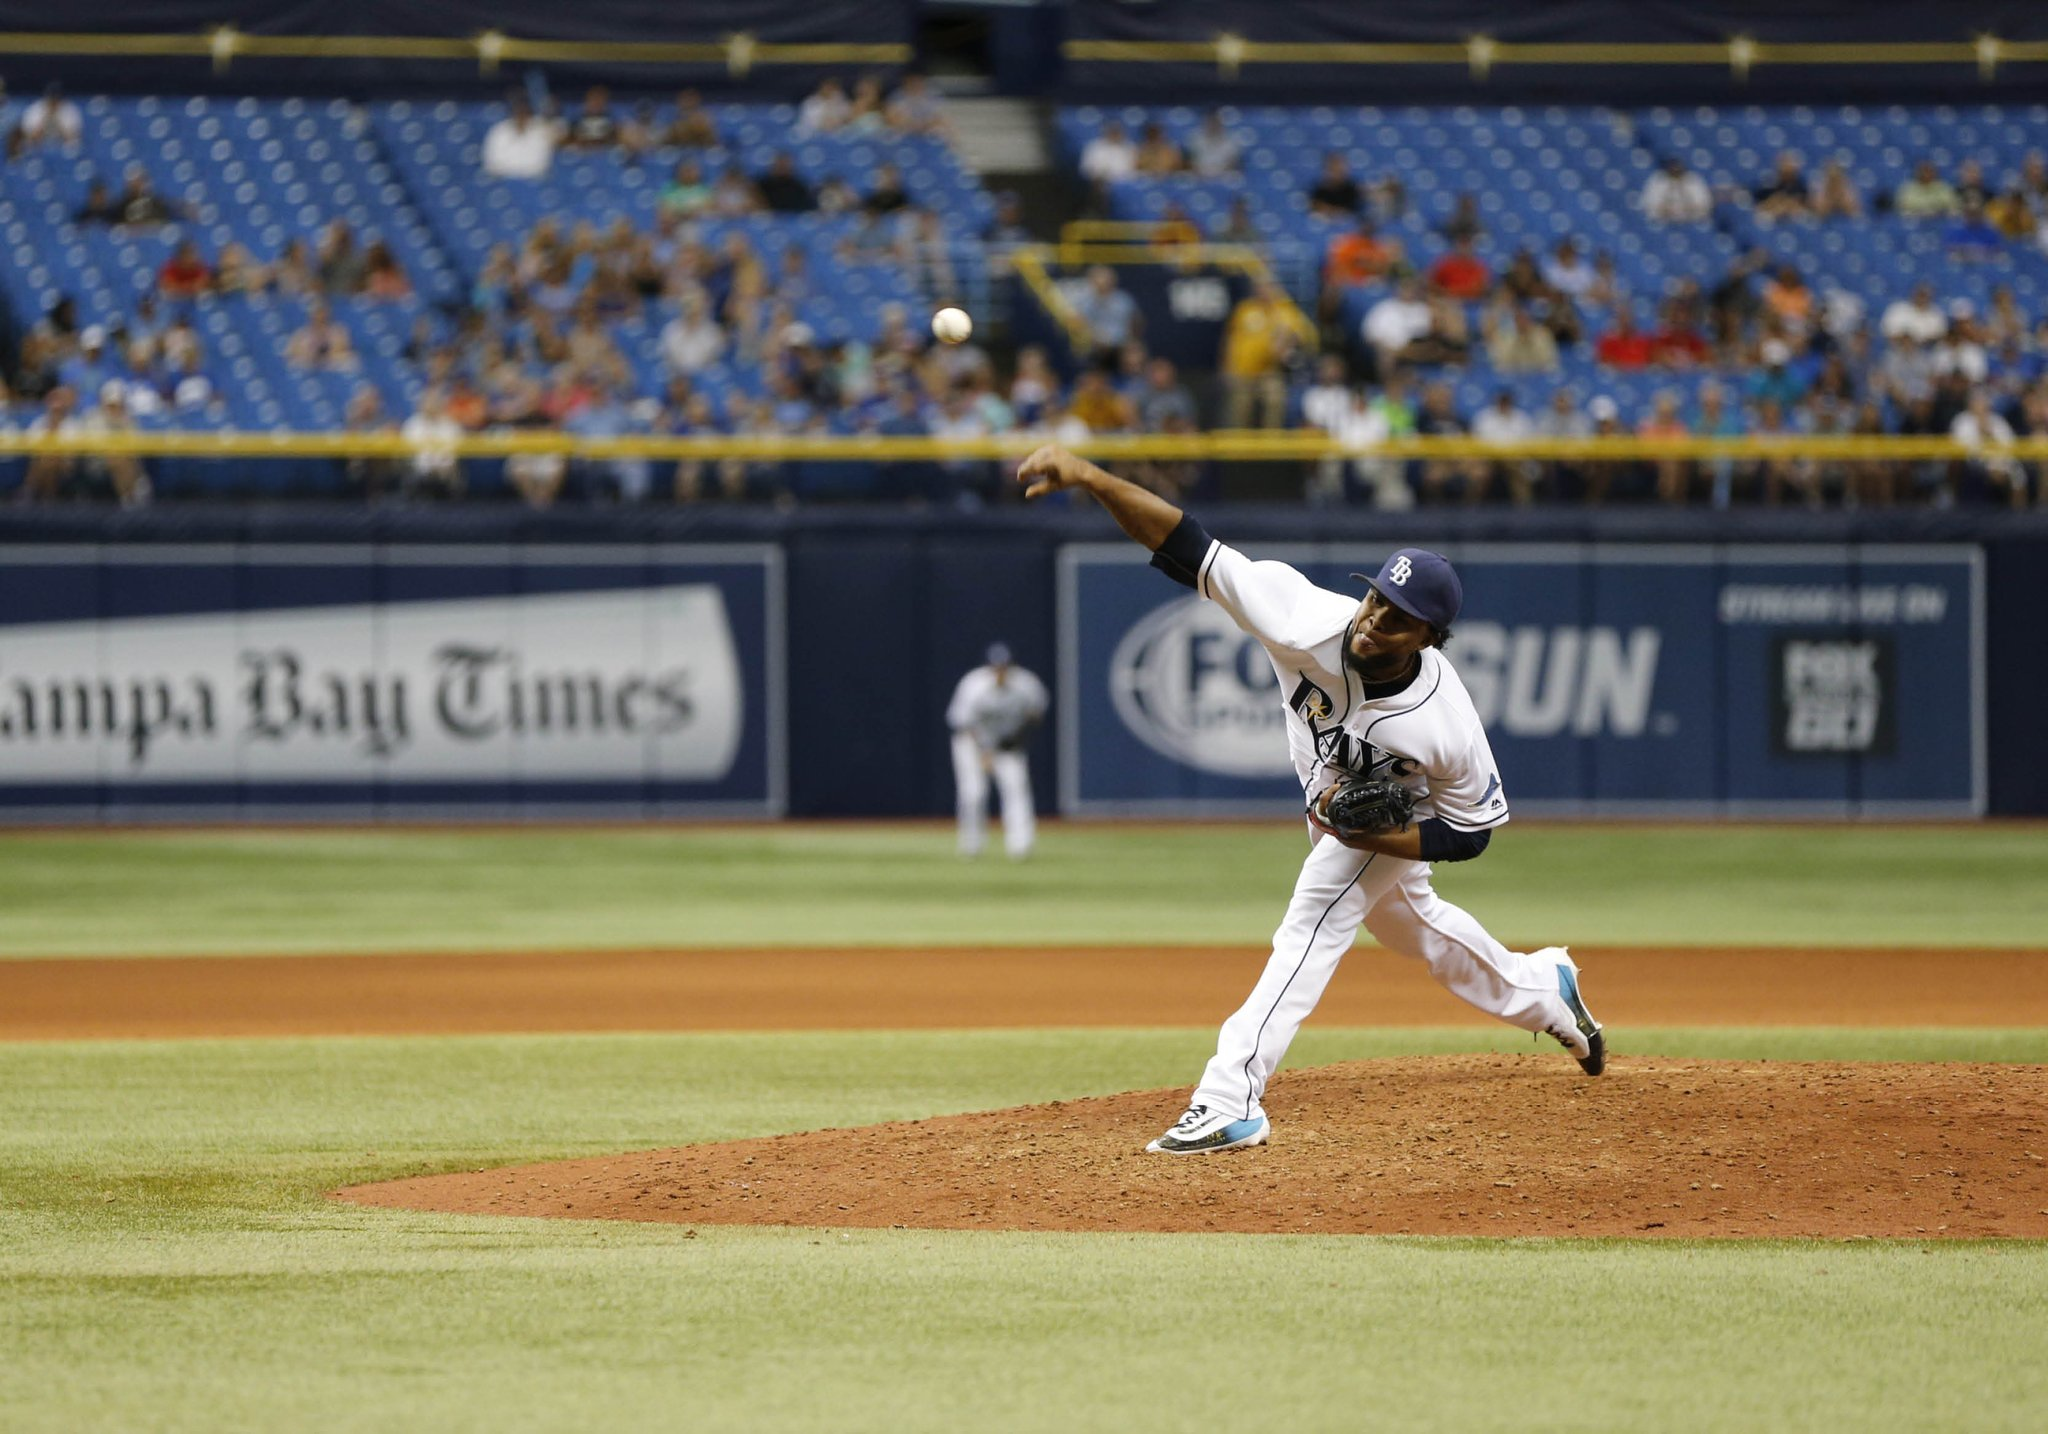 Alex Colome earned his 26th save of the season in the Tampa Bay Rays 3-2, come-from-behind win in the season finale against the Kansas City Royals on Thursday. (Photo Credit: Tampa Bay Rays)